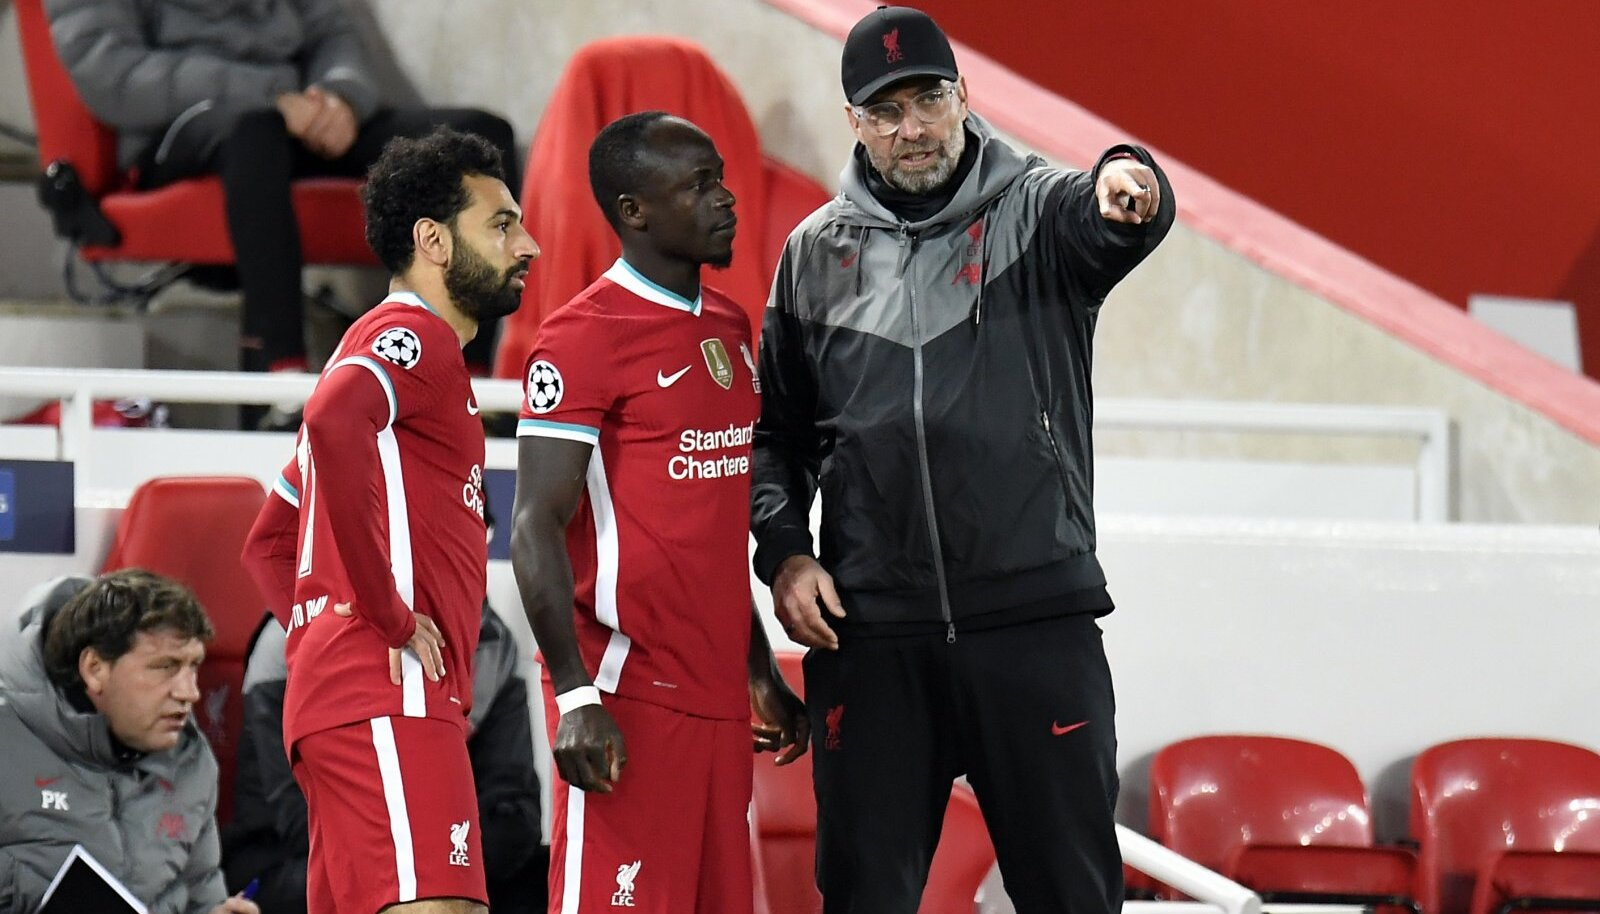 Liverpool v Midtjylland - UEFA Champions League - Group D - Anfield